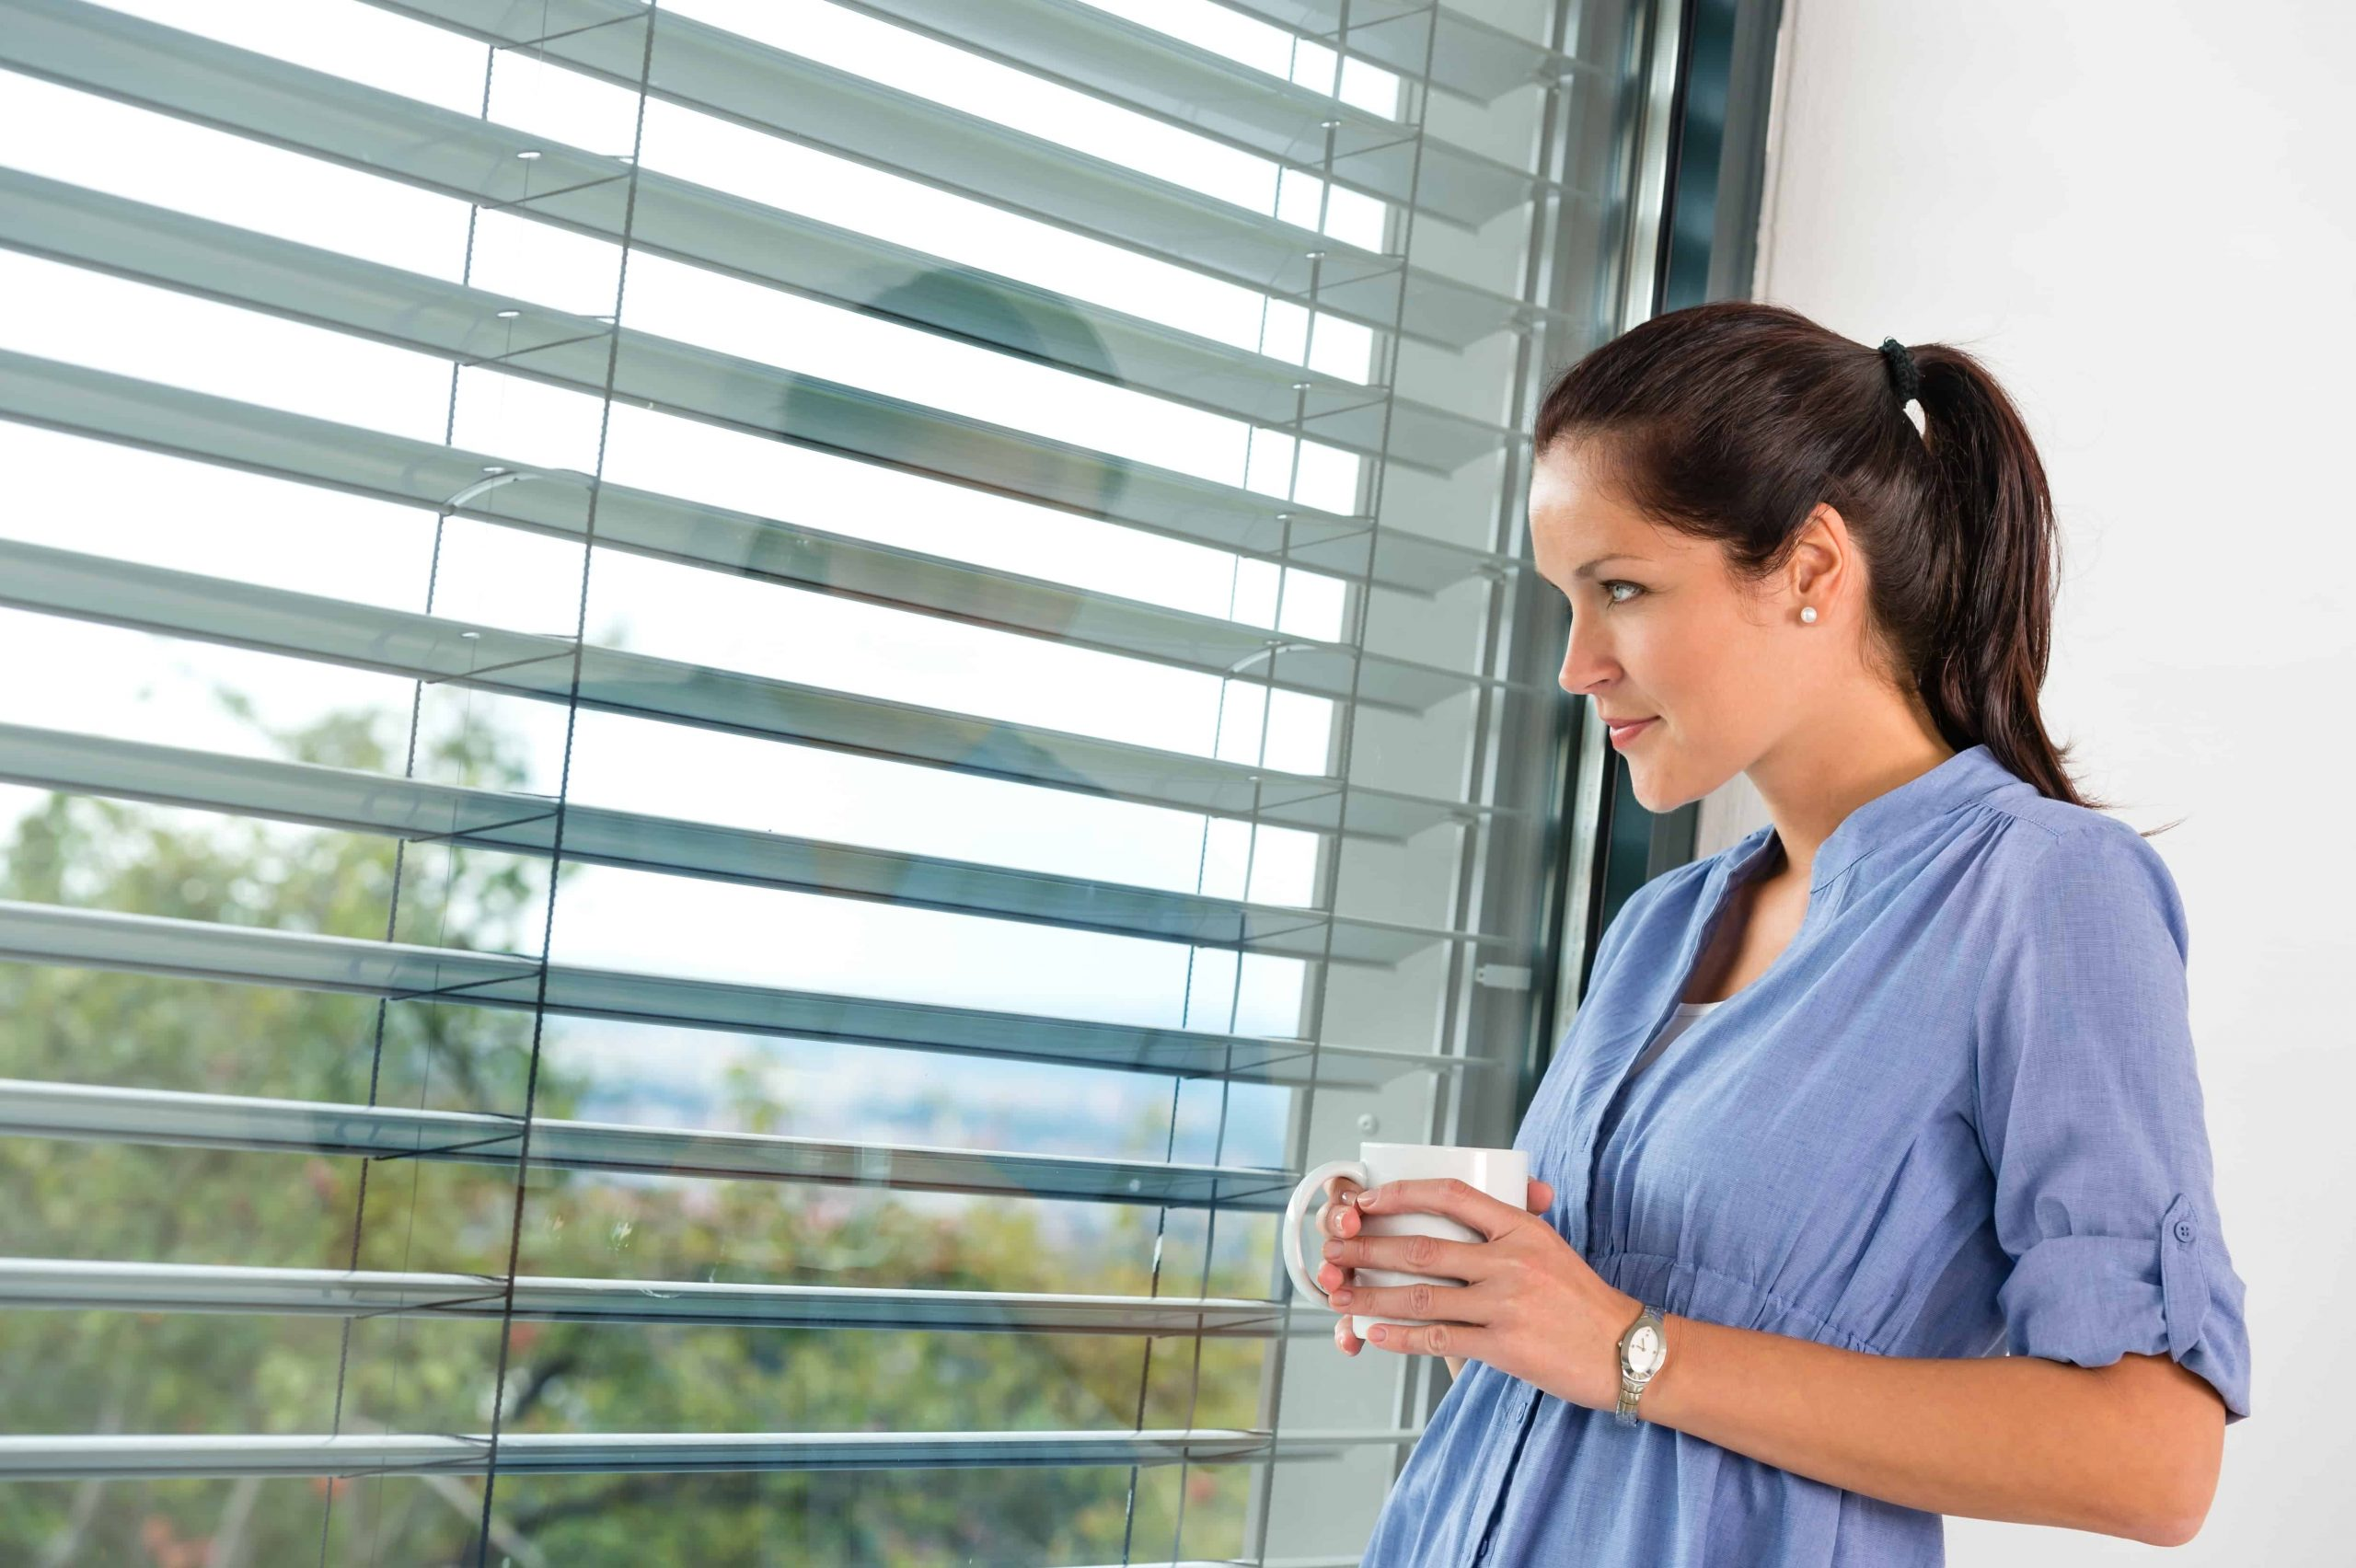 Young woman day dreaming looking window blinds Cardiff drinking tea